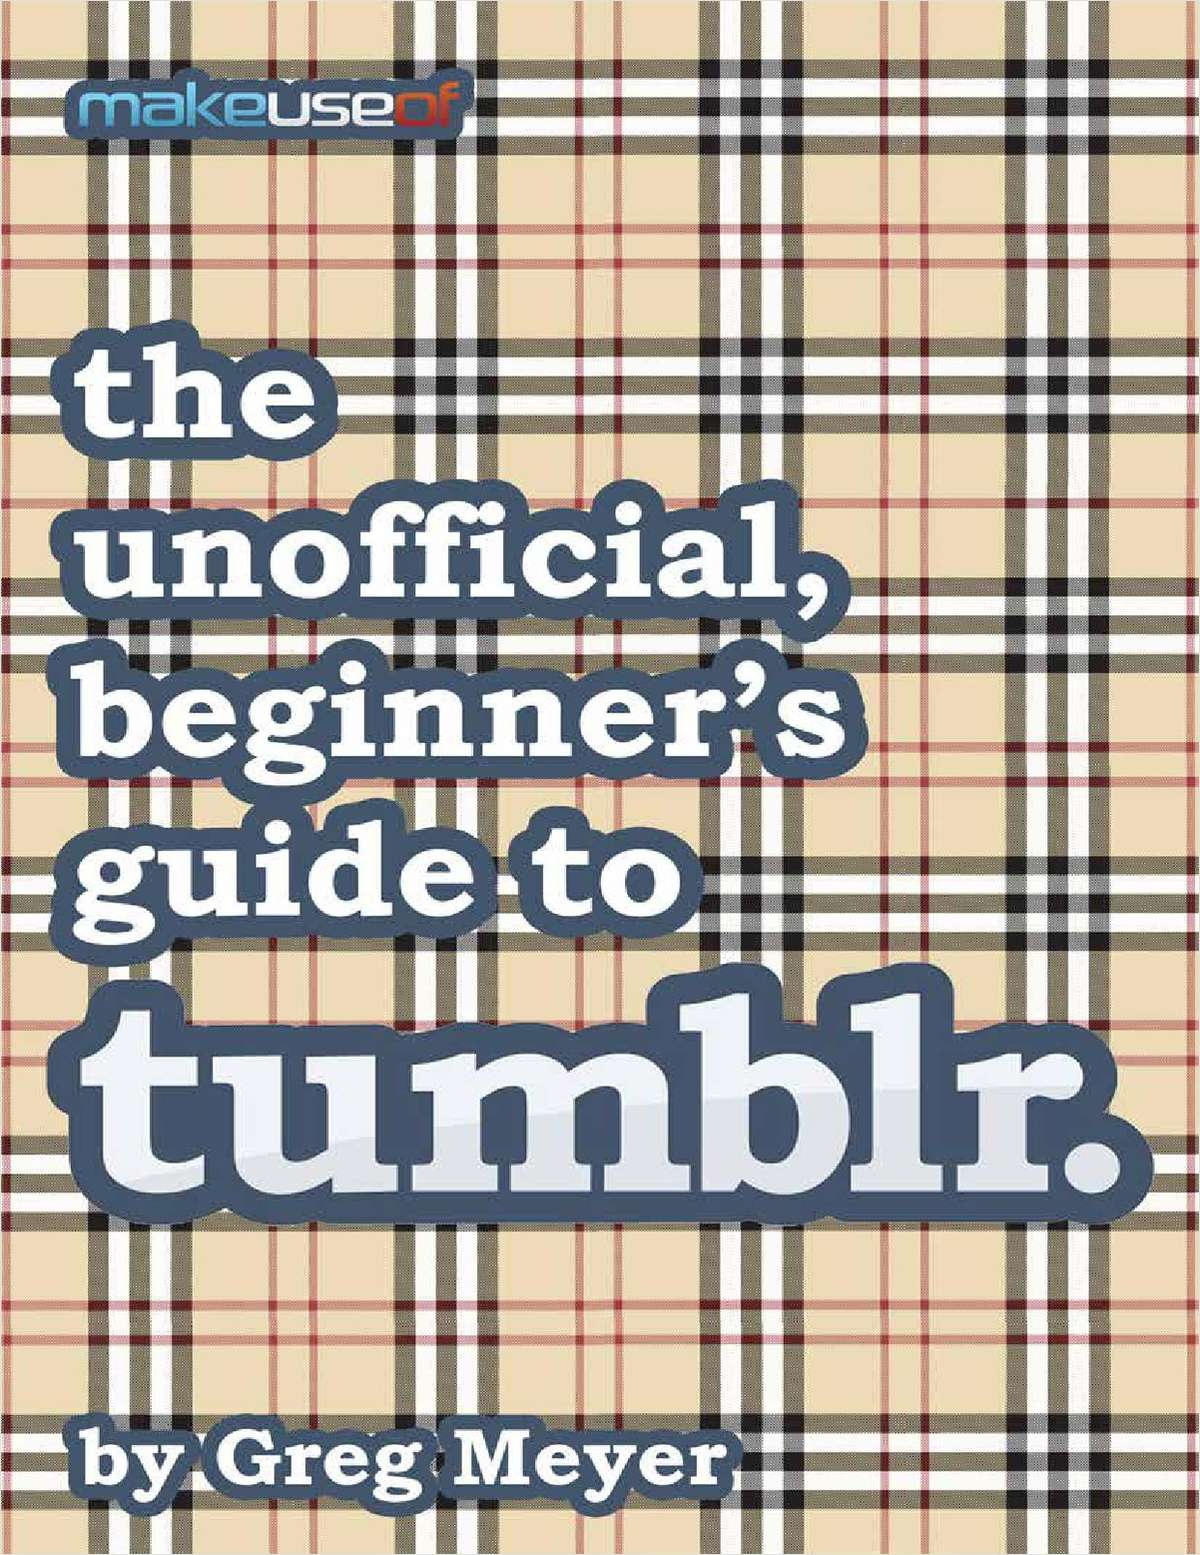 The Unofficial, Beginners Guide to tumblr